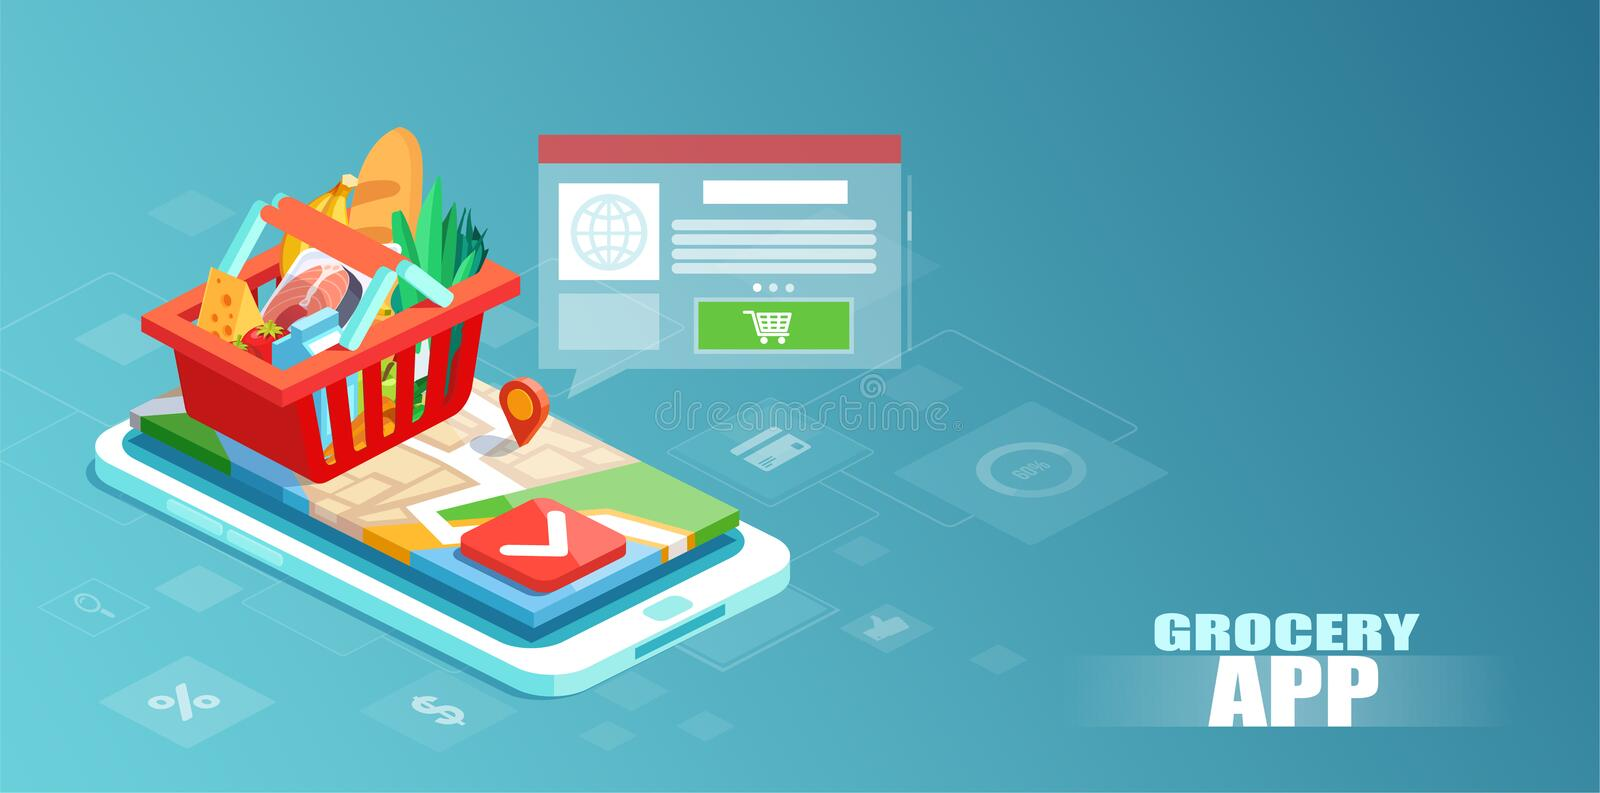 Isometric vector of a full basket with vegetables and food on a smartphone display stock illustration